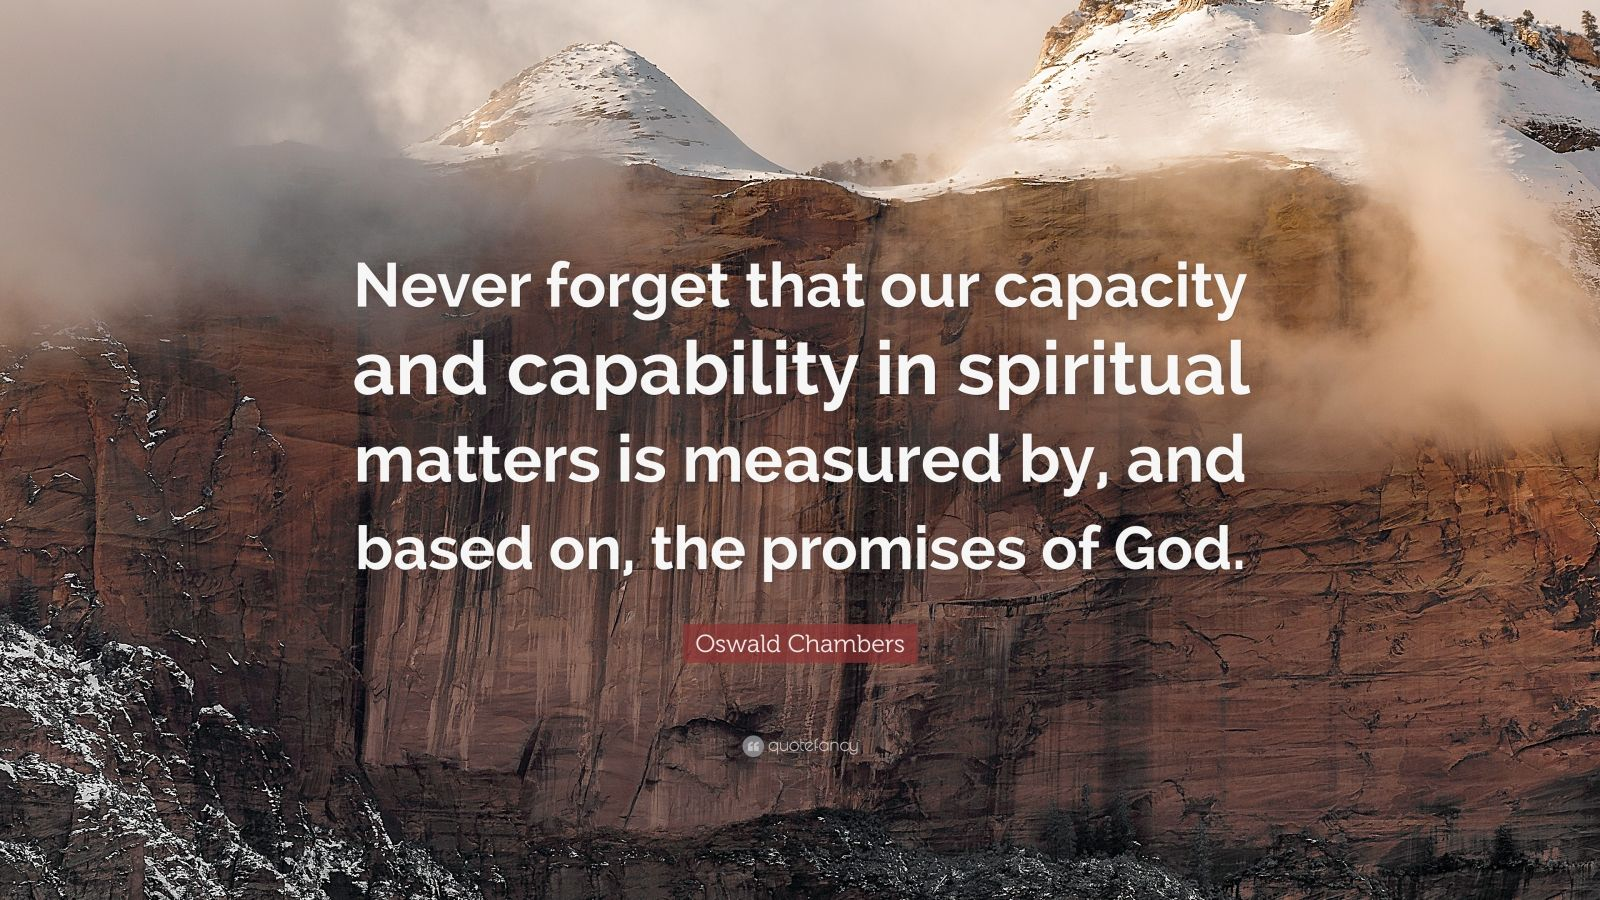 """Oswald Chambers Quote: """"Never forget that our capacity and capability in spiritual matters is measured by, and based on, the promises of God."""""""